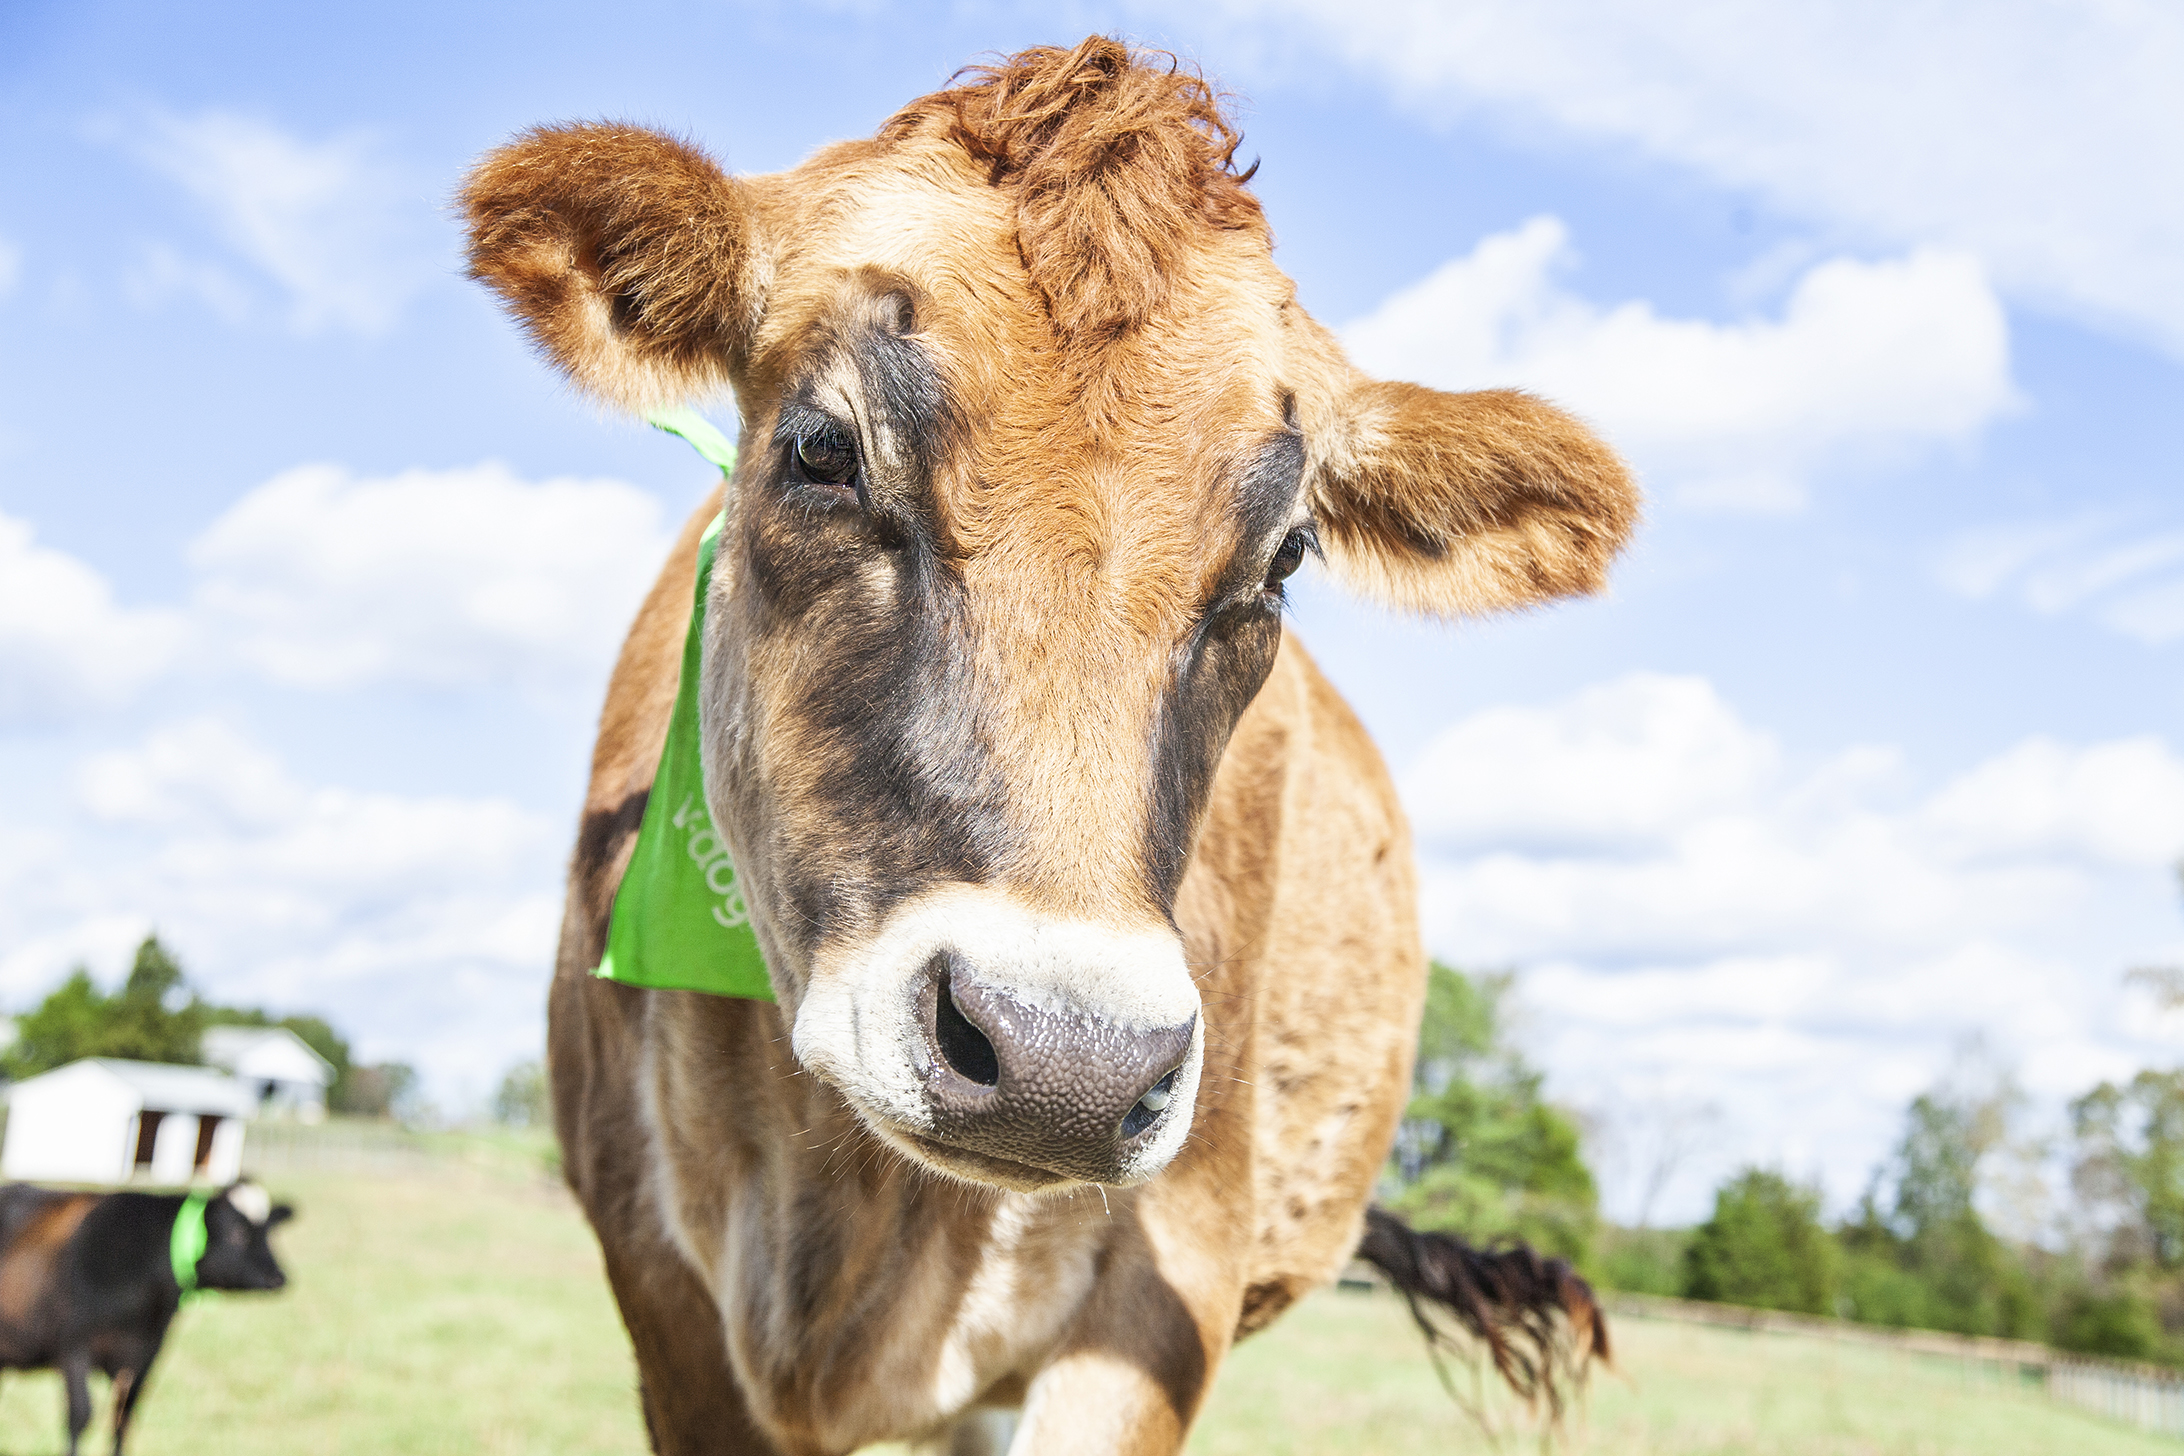 Farm animal sanctuary, rescue cow, rescue steer, cow photography